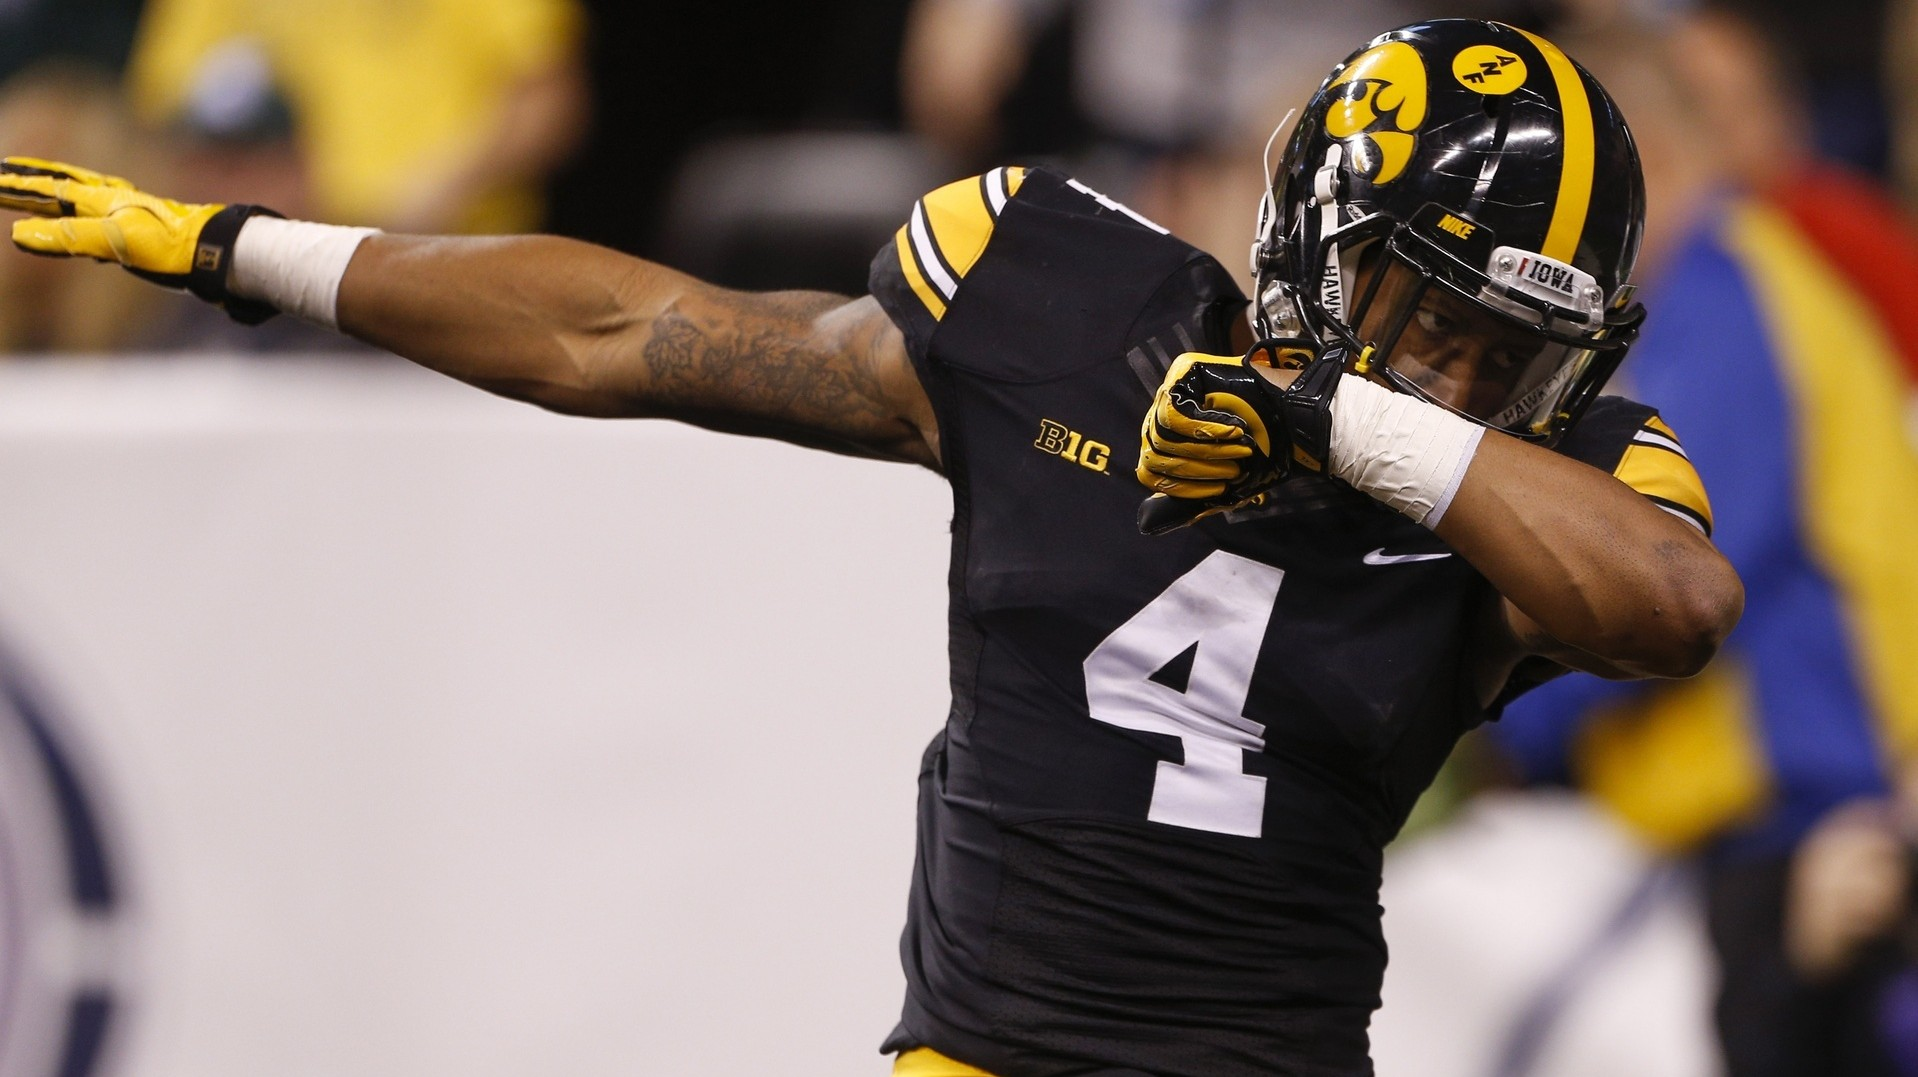 Iowa Can Win, Unless They Keep Playing Not to Lose